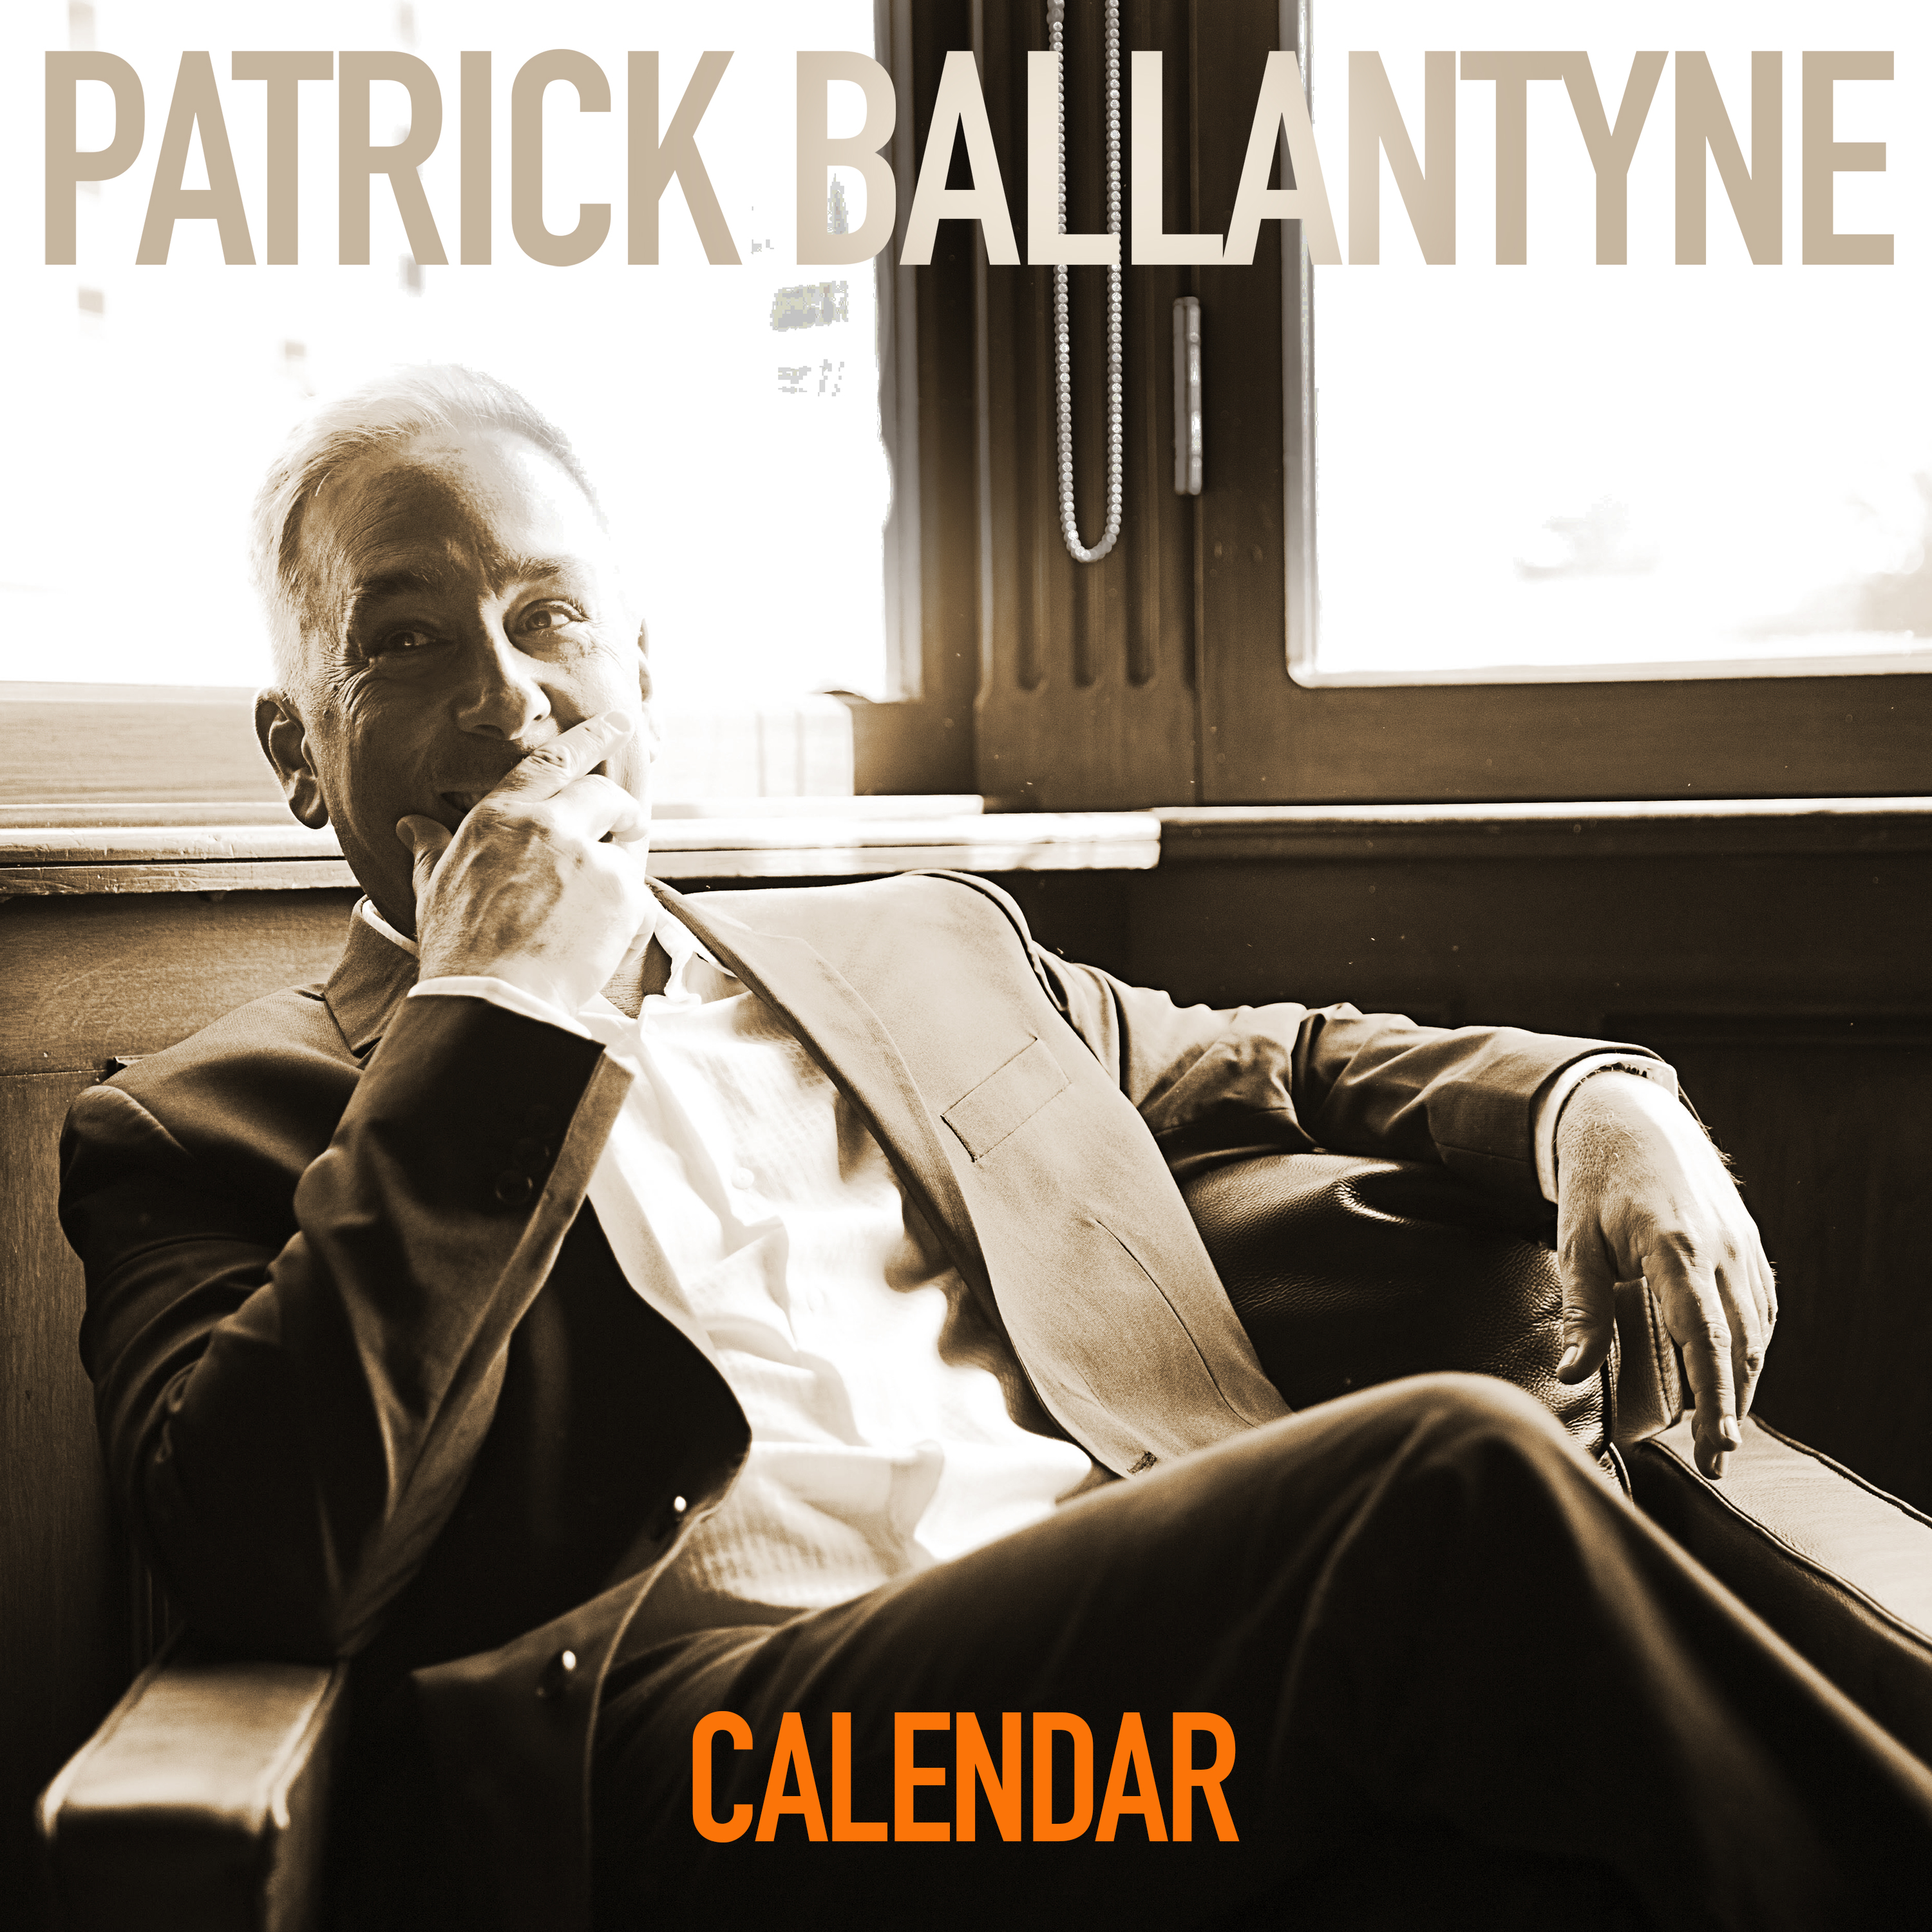 New album from Patrick Ballantyne available now!